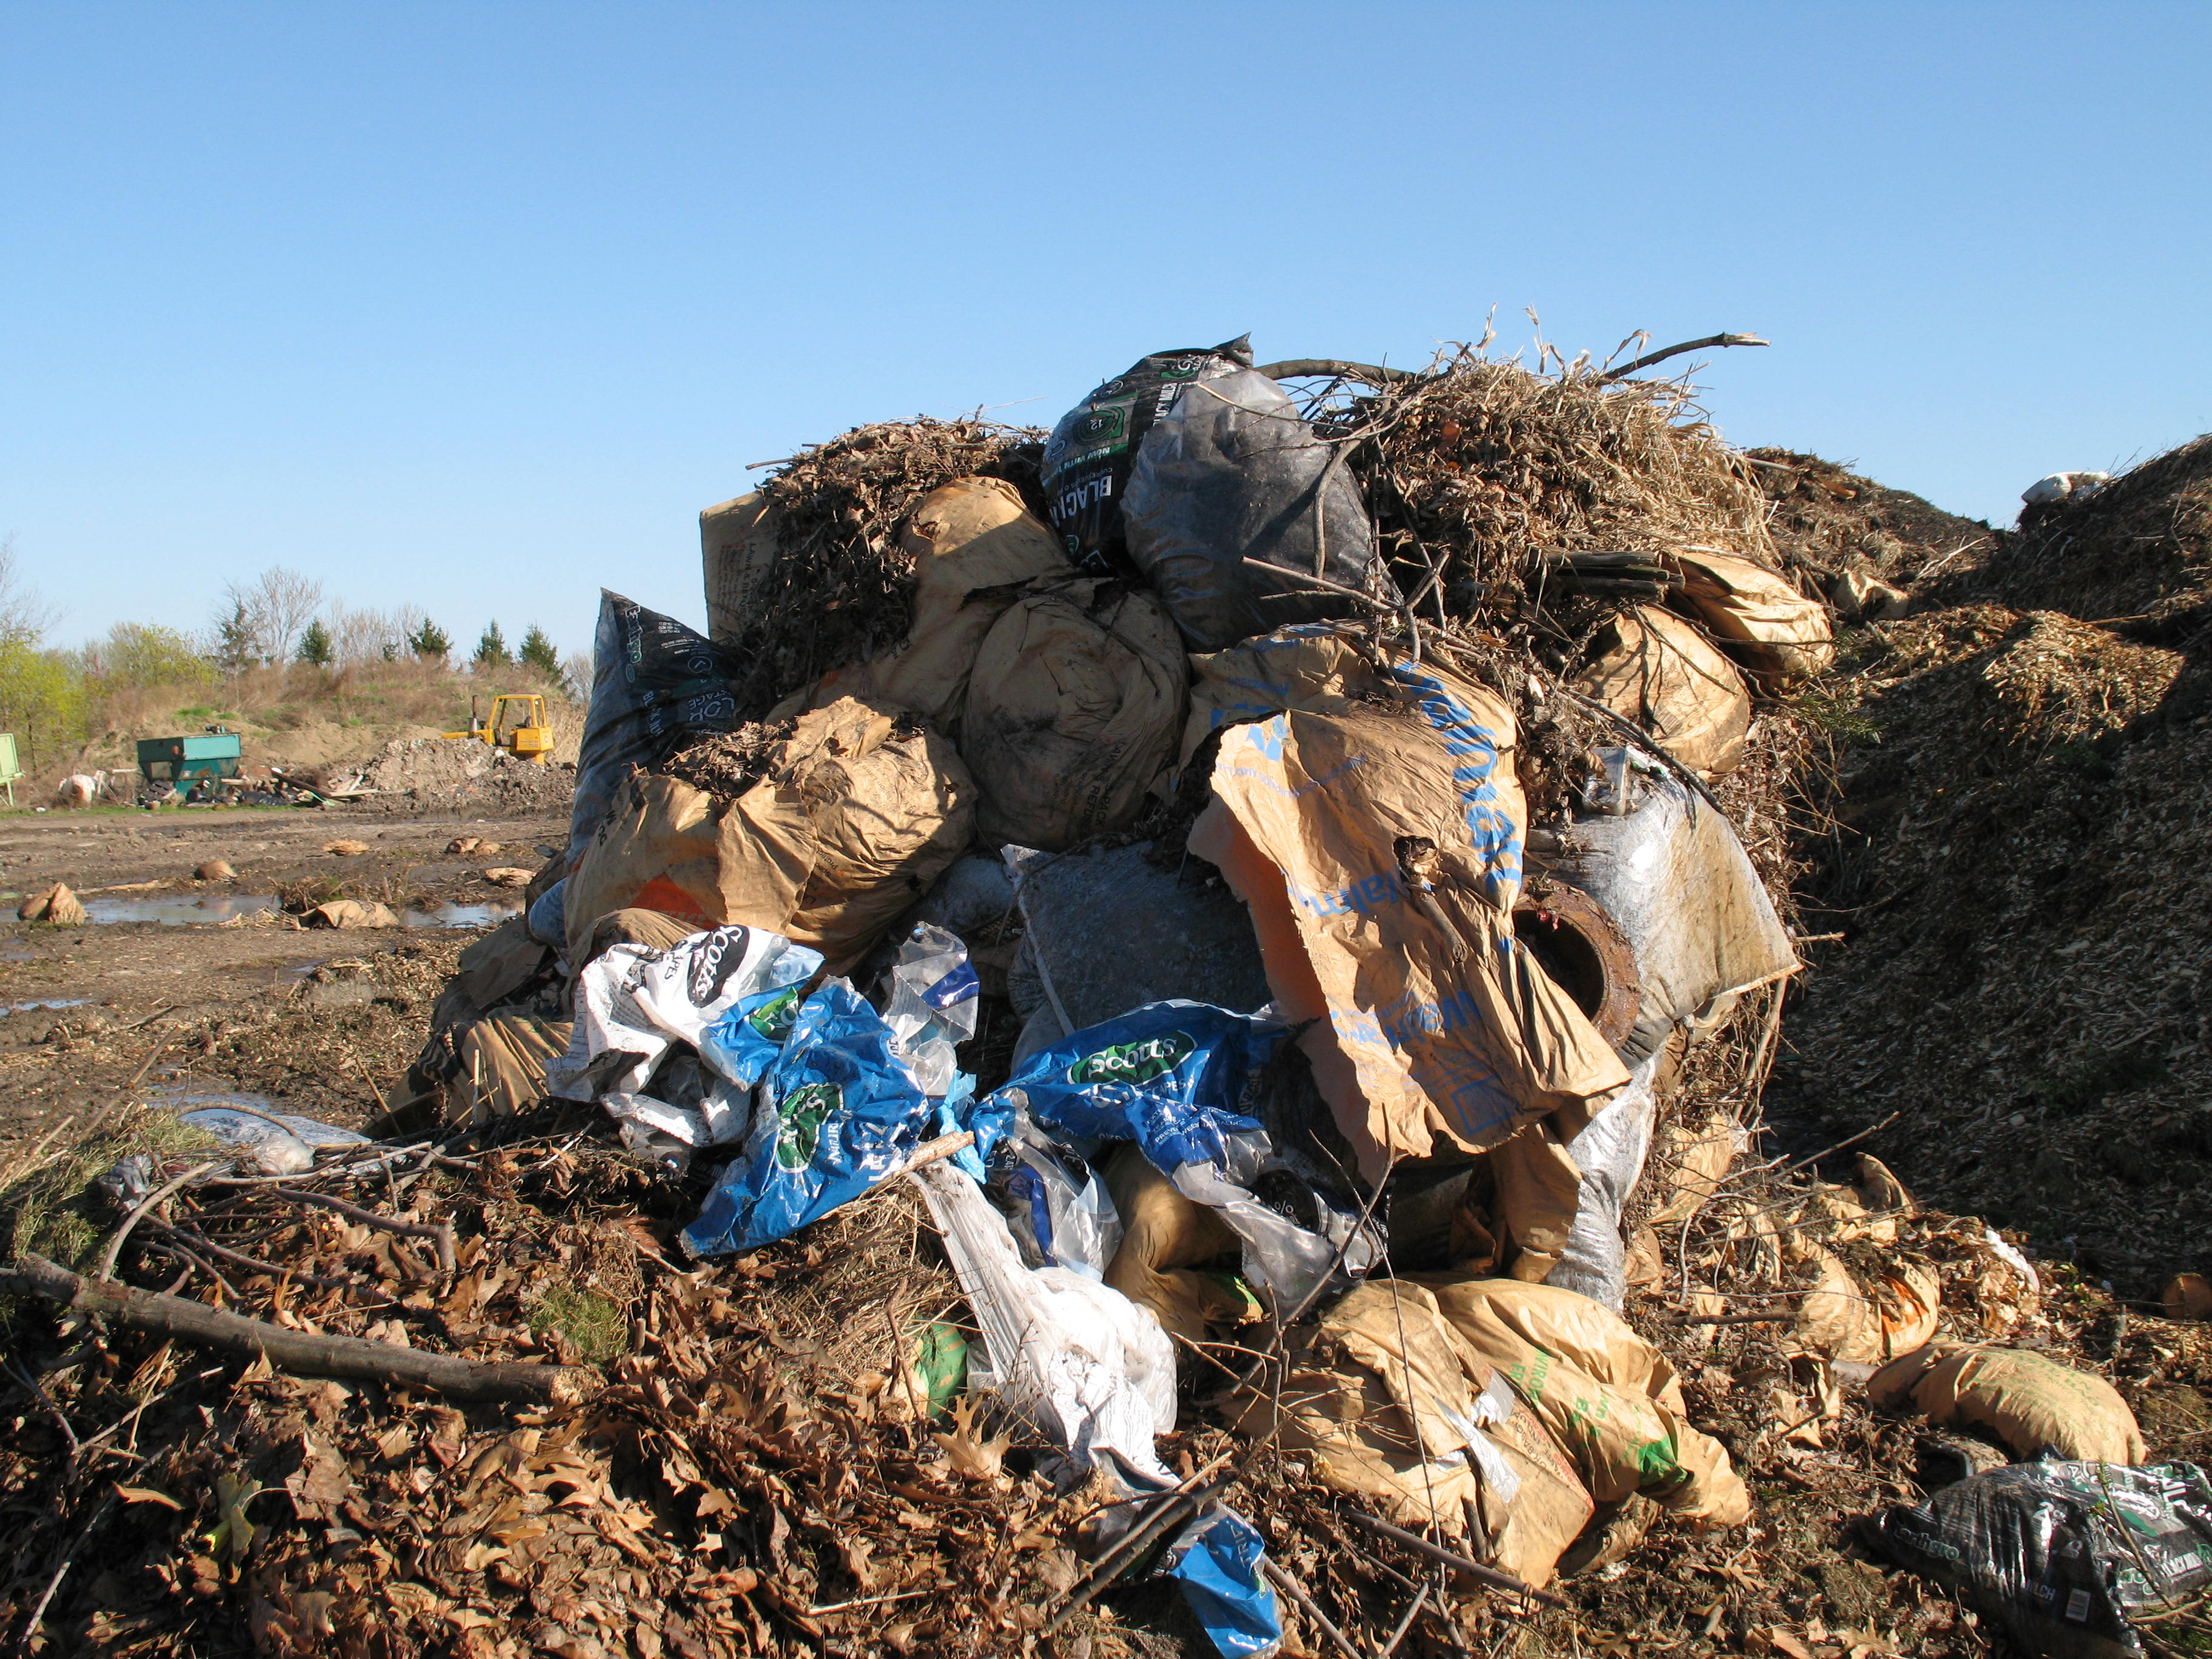 Plastic bags do not belong in compost, cautioned officials from Good Earth Organics Corp. in Lancaster.